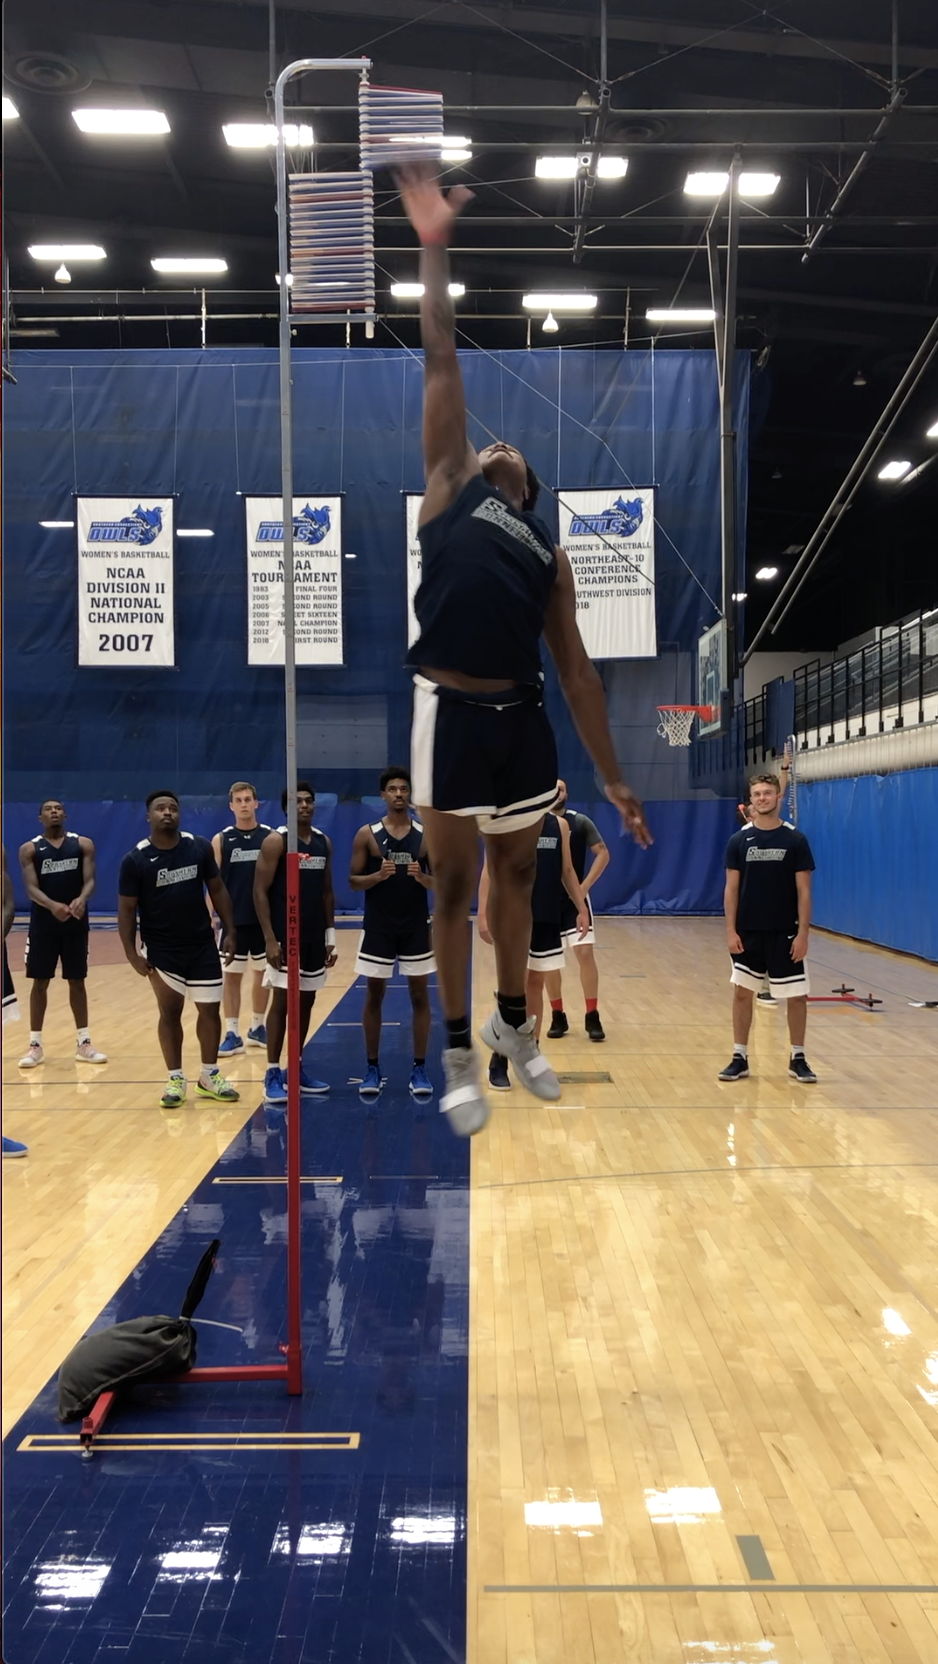 An athlete performing a vertical jump test